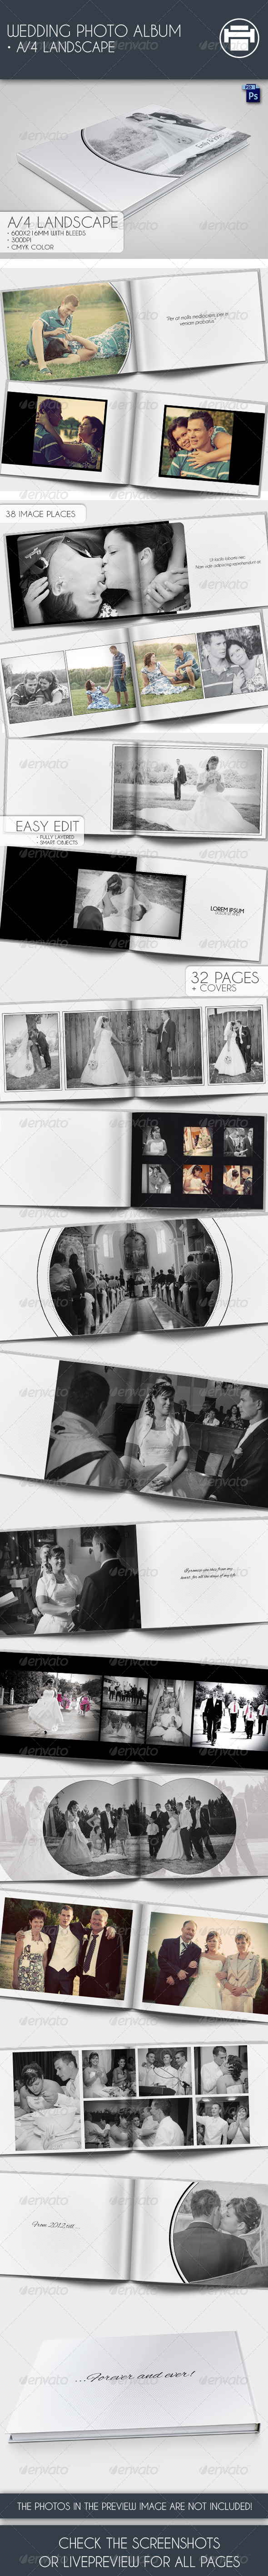 Wedding Photo Album A4 Landscape - Photo Albums Print Templates